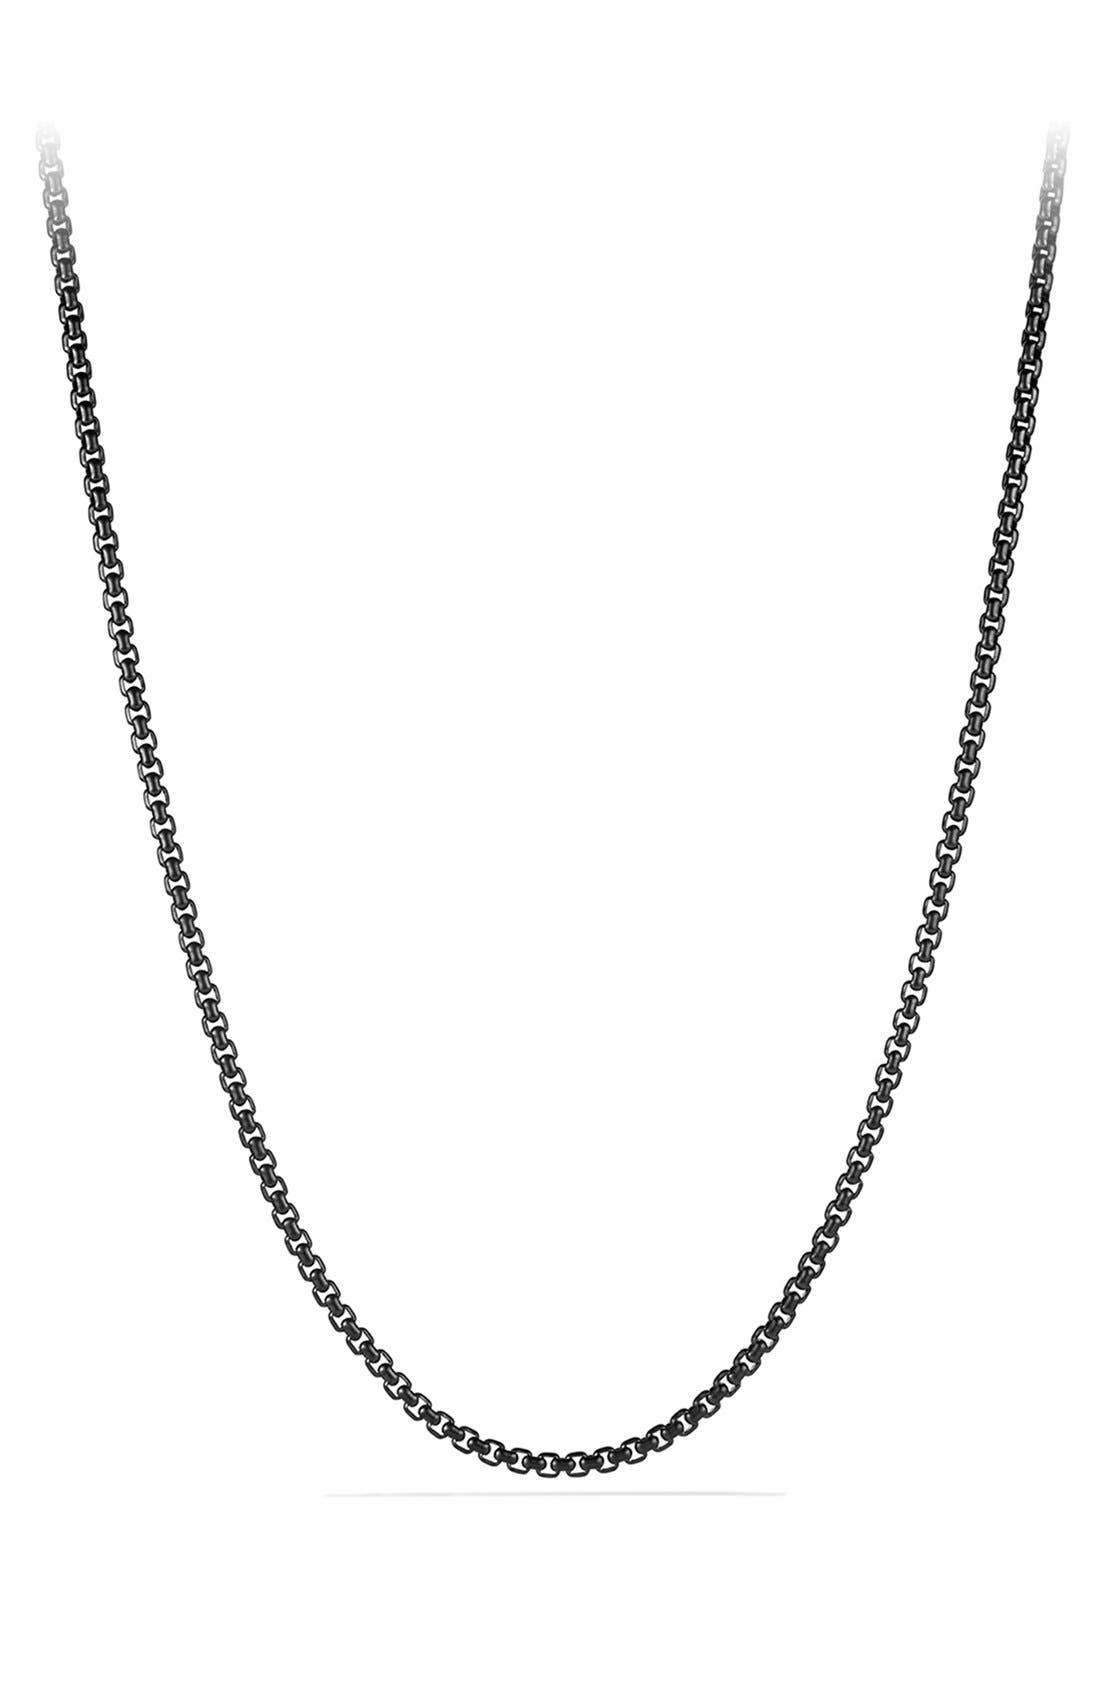 'Chain' Box Chain Necklace,                         Main,                         color, Stainless Steel